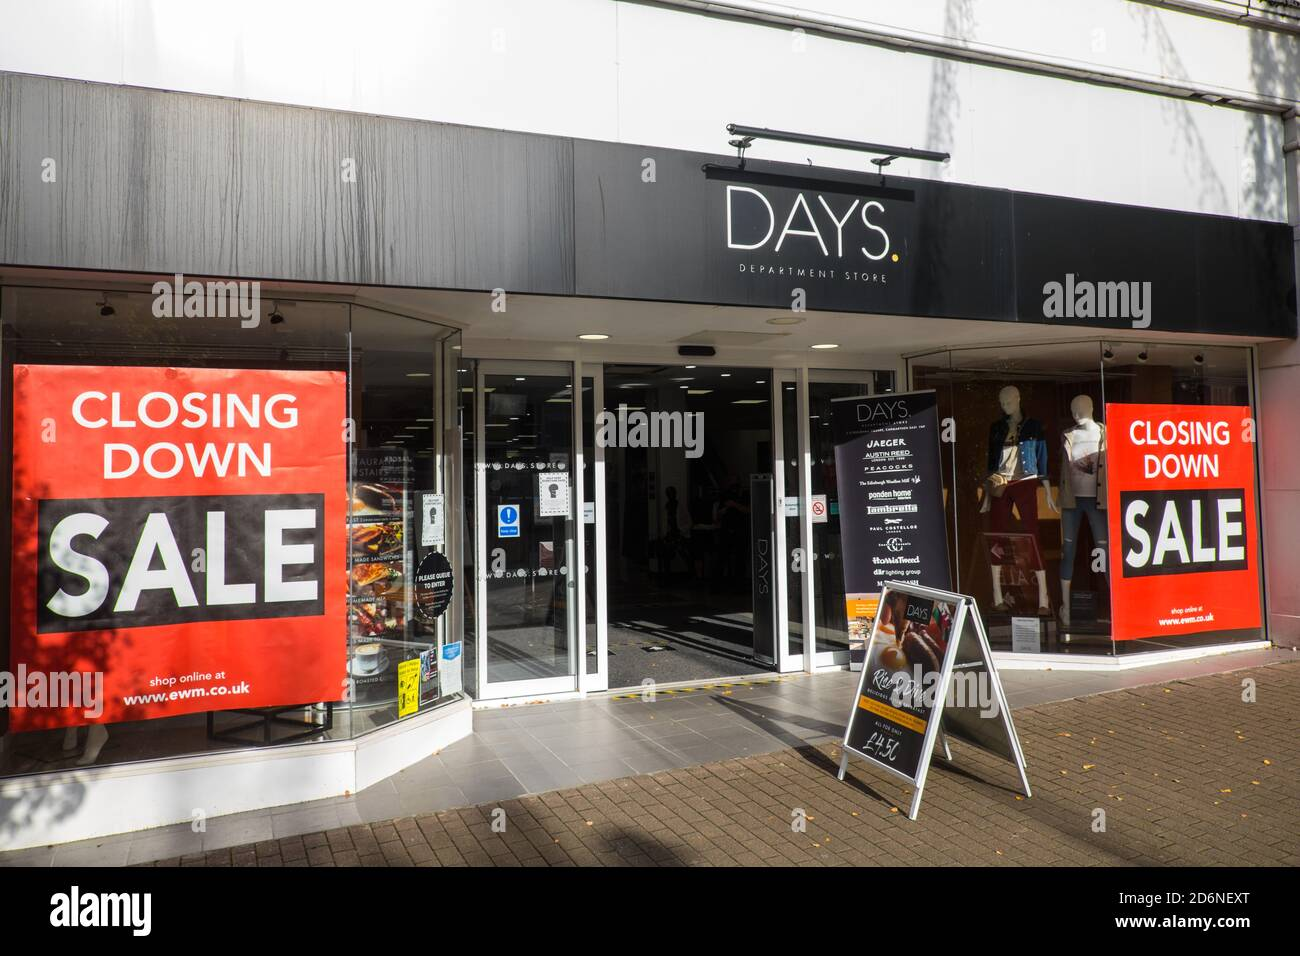 Jaeger Store High Resolution Stock Photography And Images Alamy